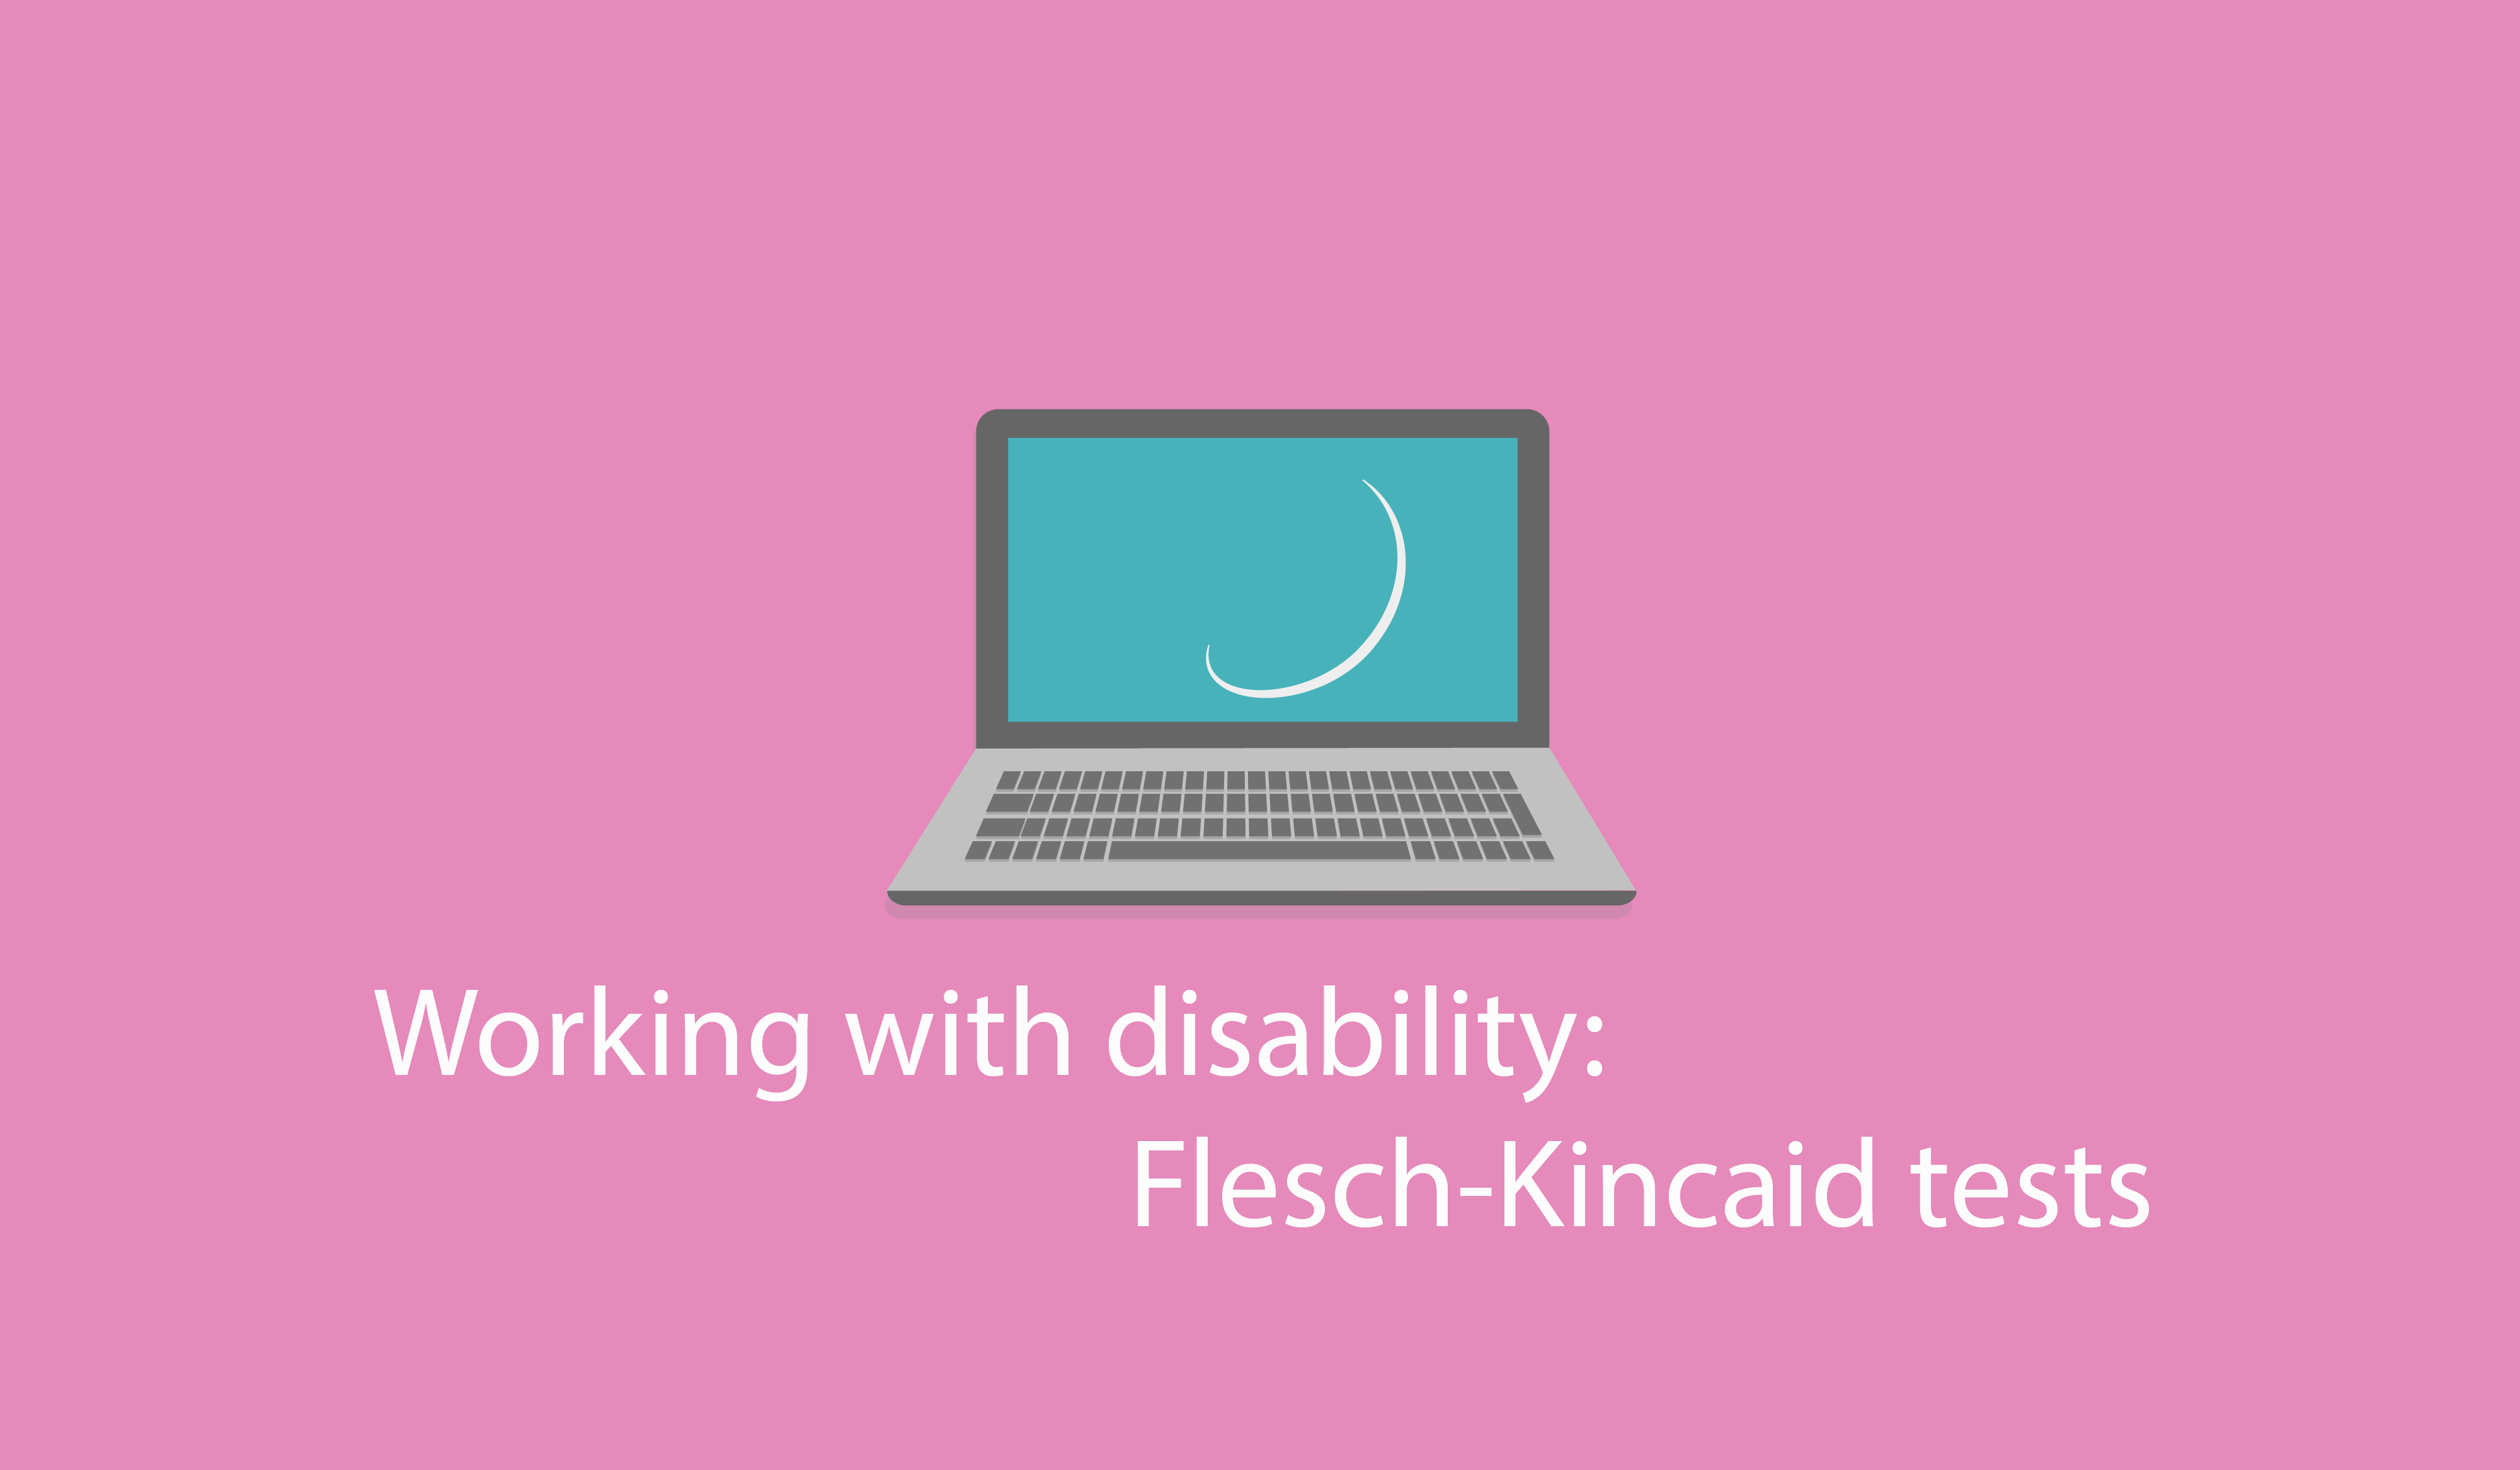 Working with disability: Flesch-Kincaid tests